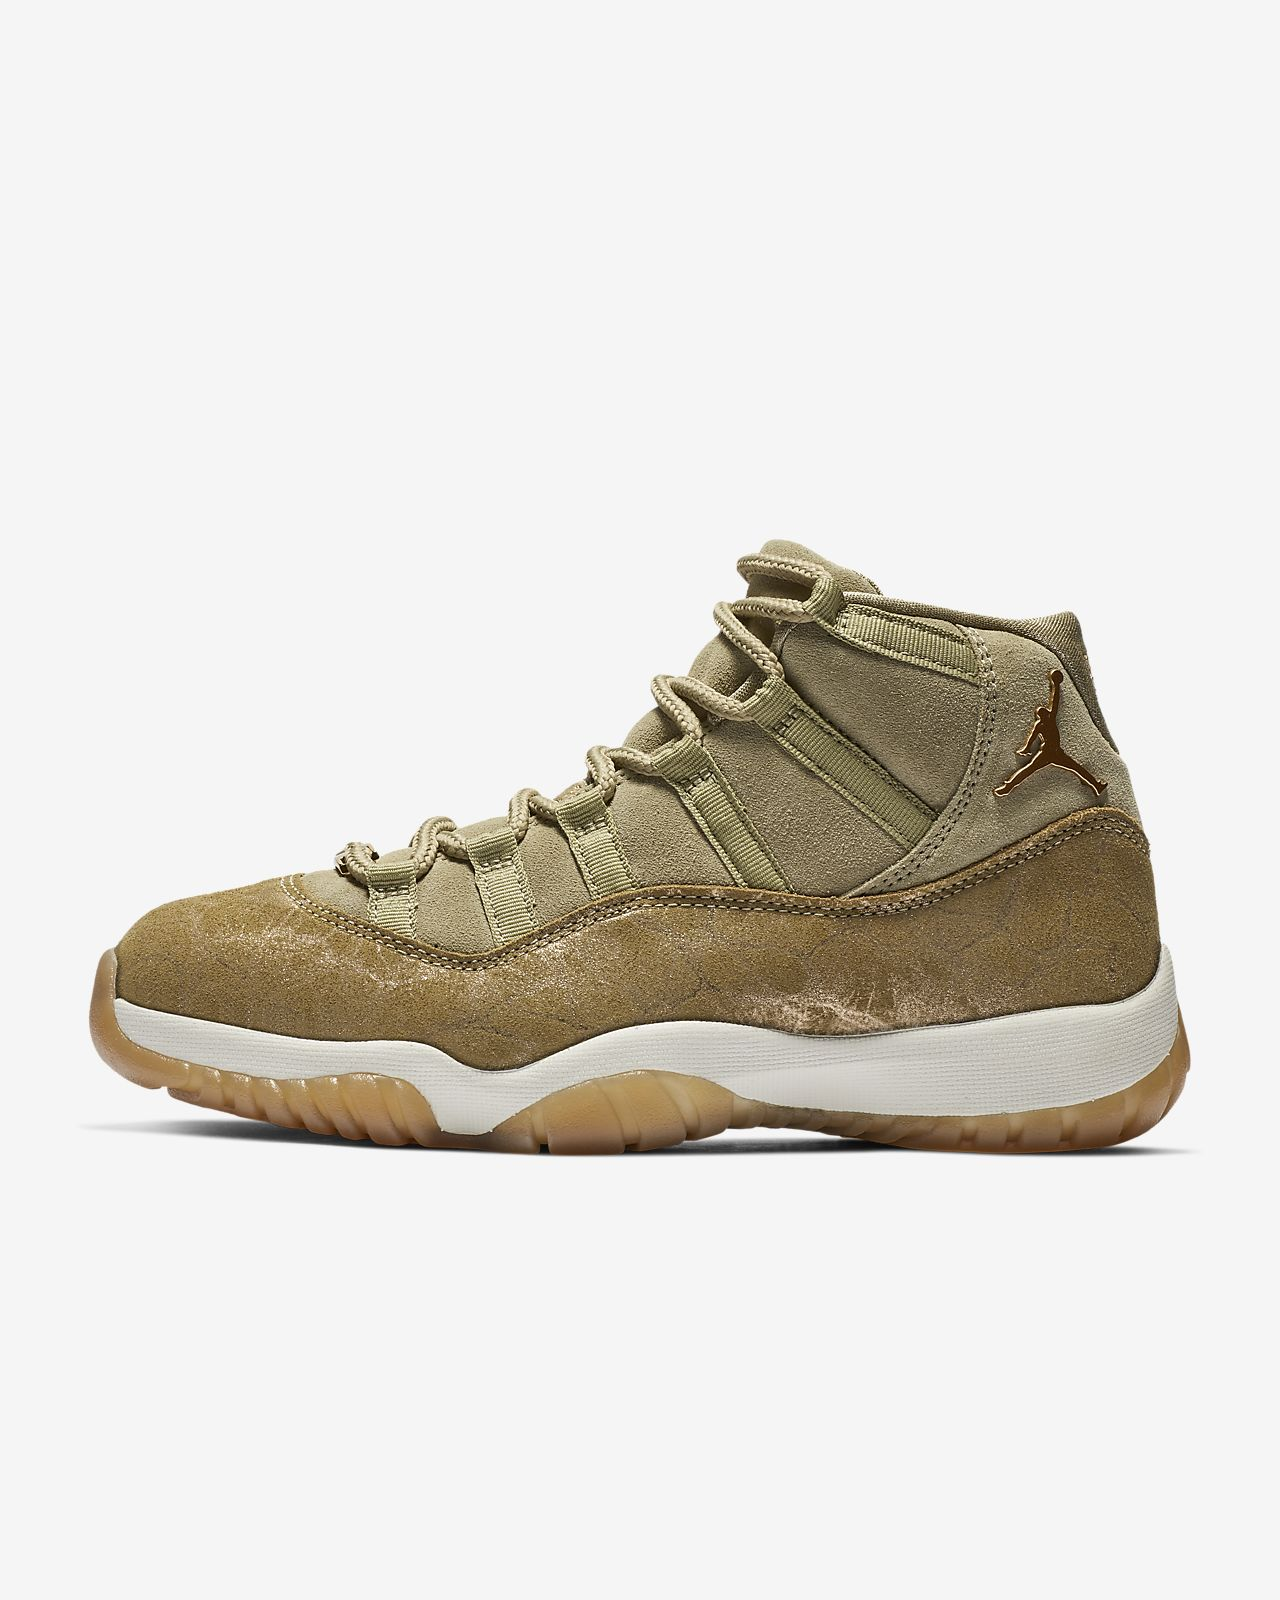 los angeles 4899e c6117 Air Jordan 11 Retro Women's Shoe